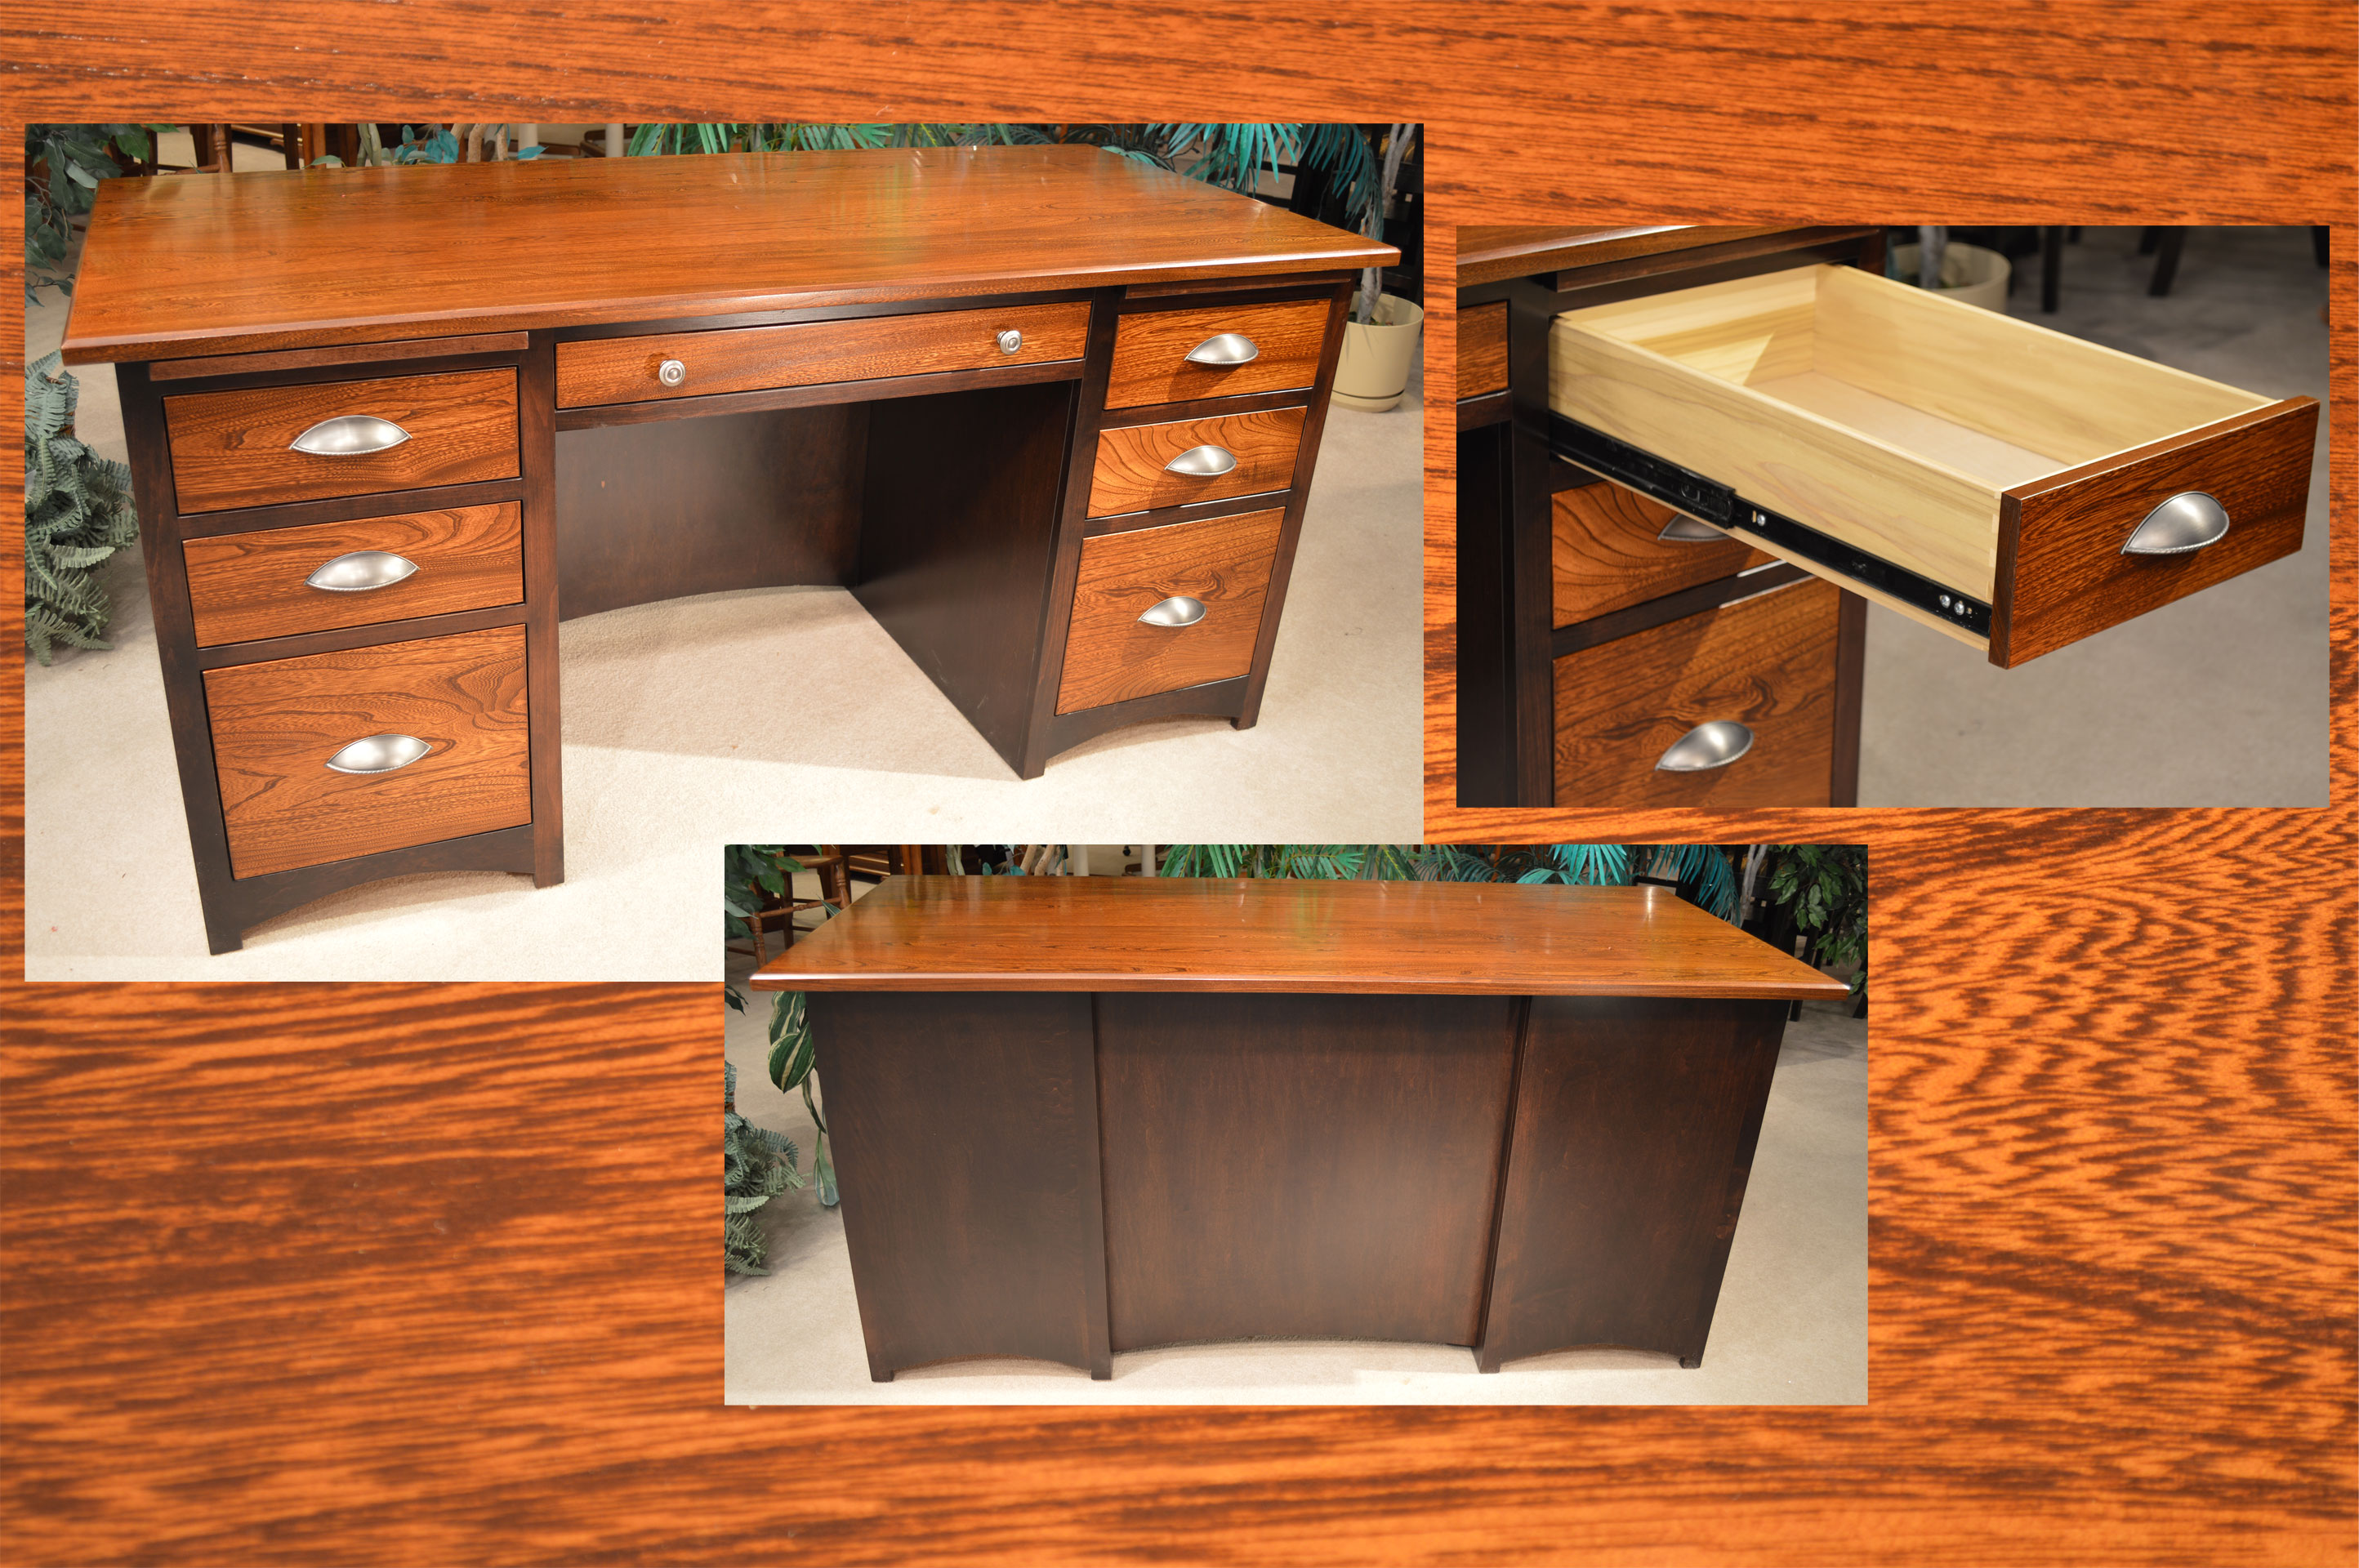 Amish Elm Maple Executive Desk Jasens Fine Furniture  : offem from jasensfinefurniture.com size 2888 x 1920 jpeg 1001kB